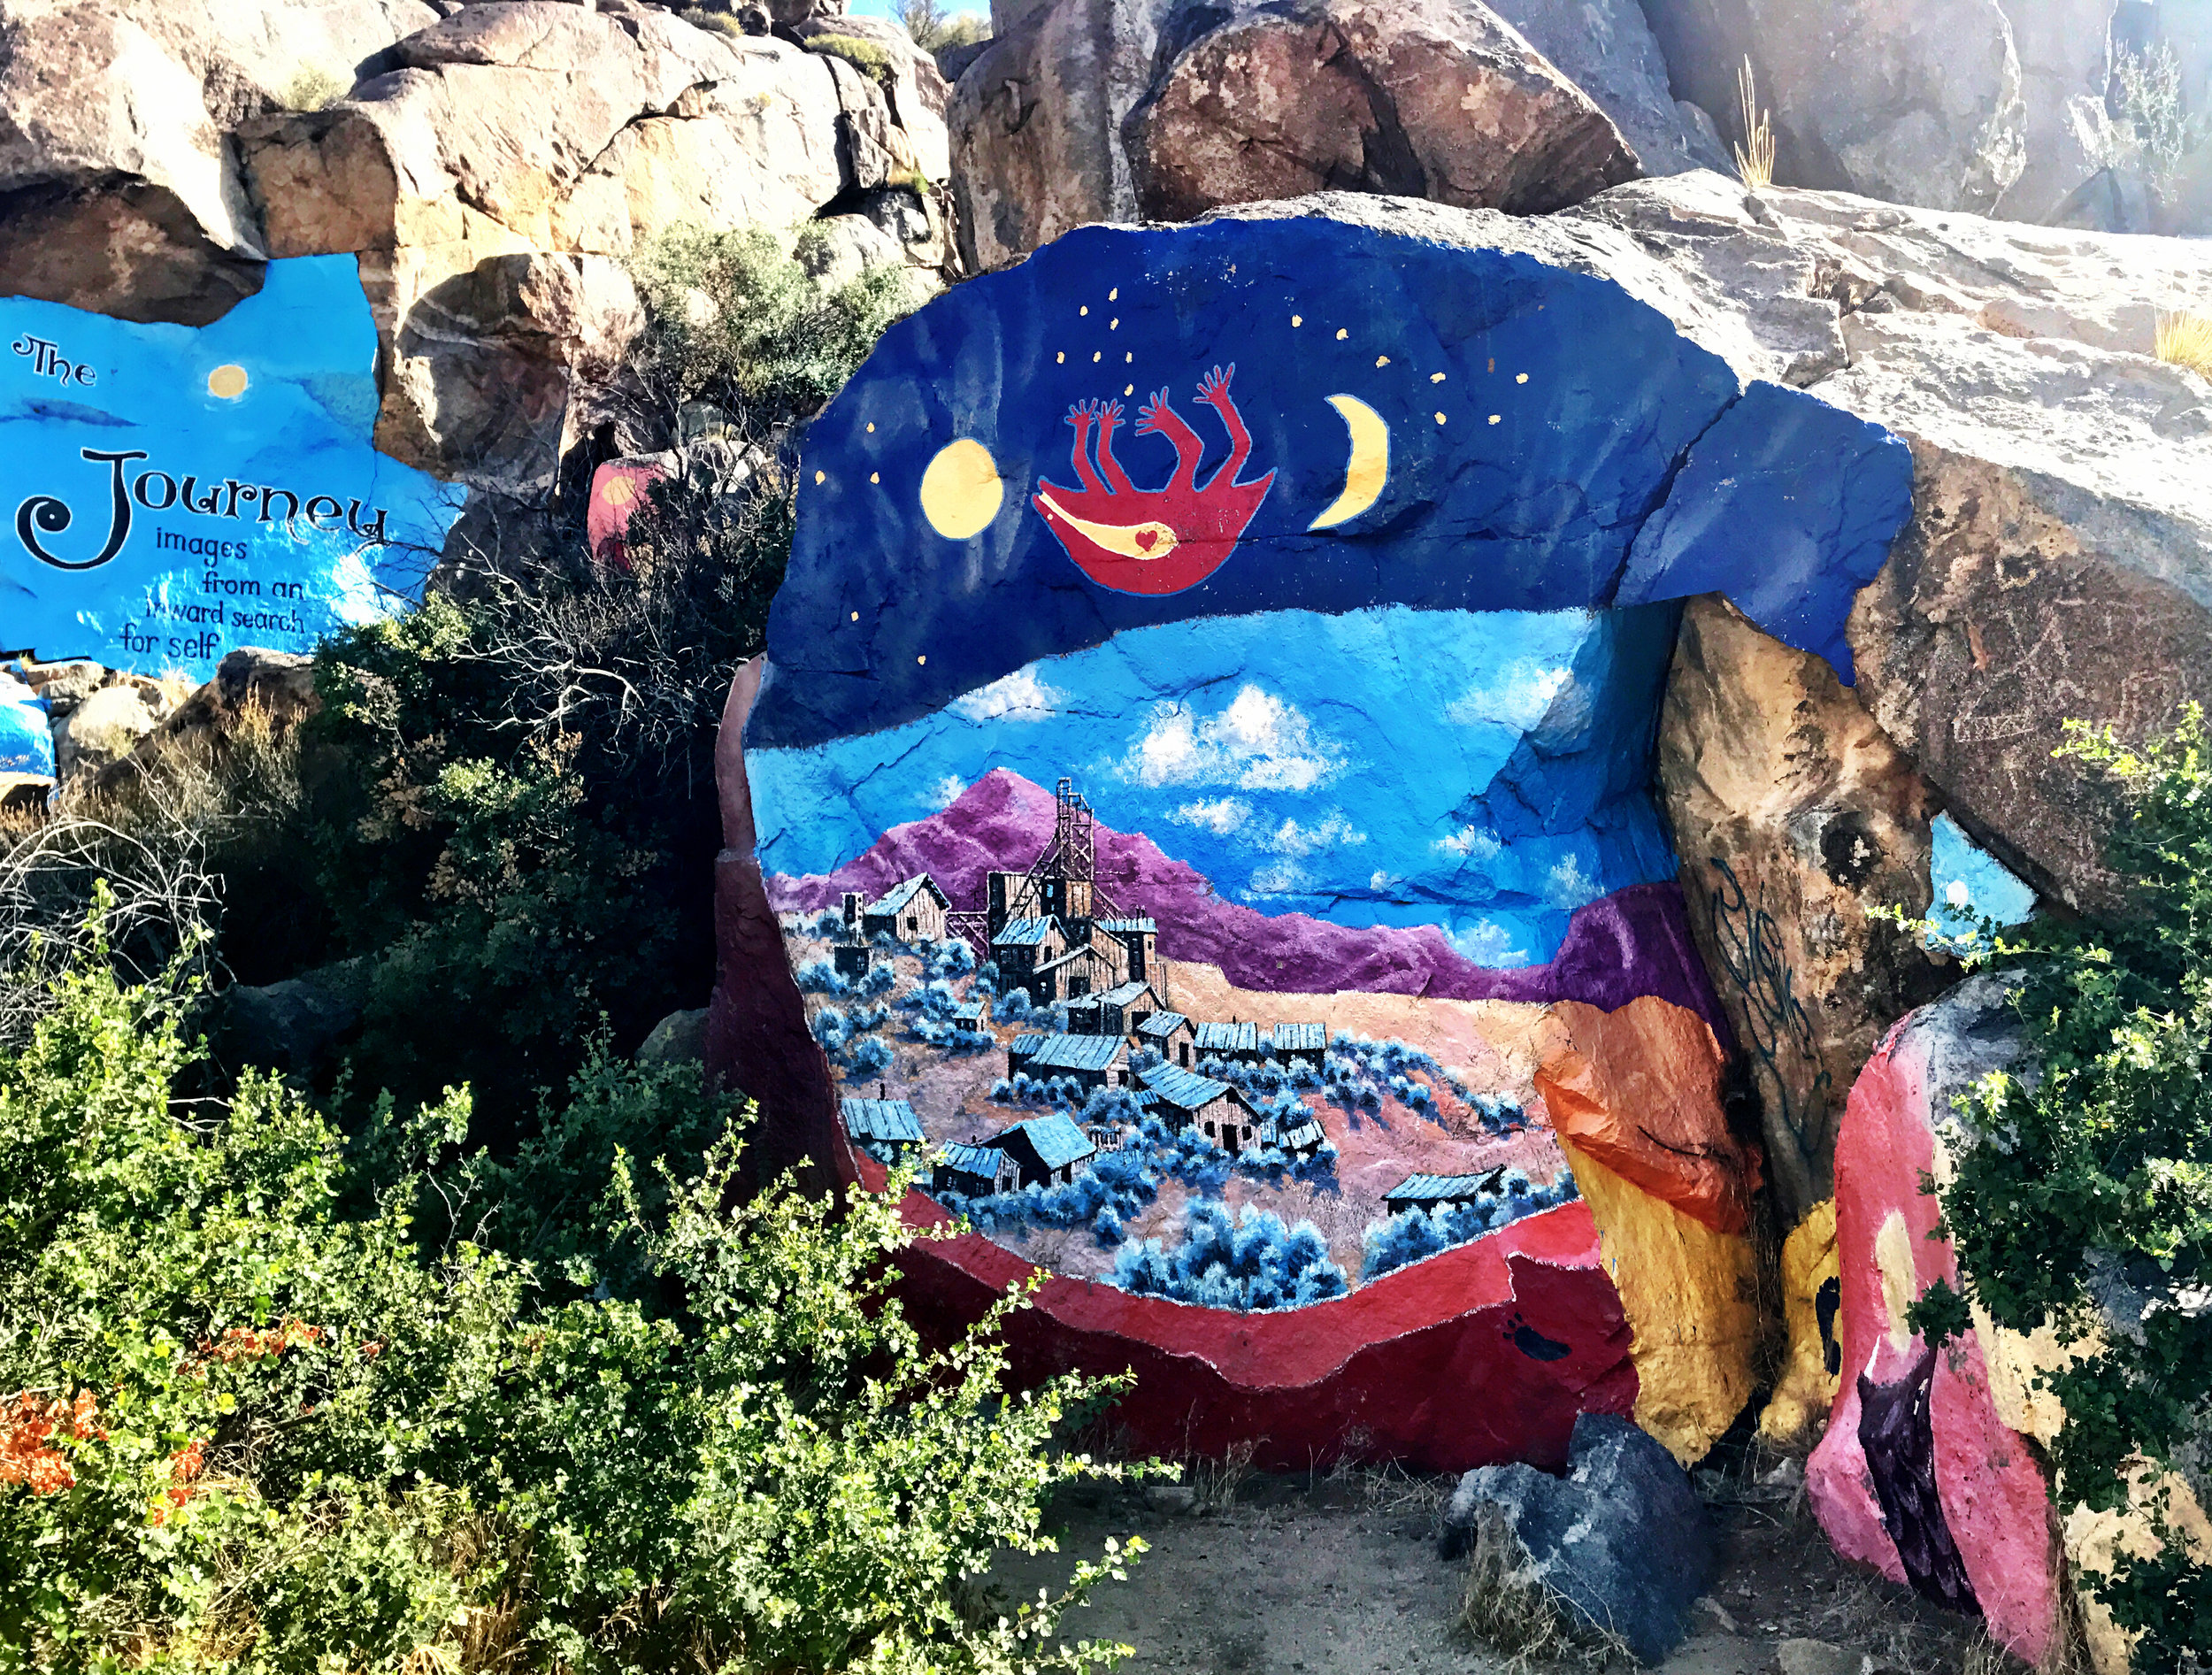 Murals in Chloride, Arizona